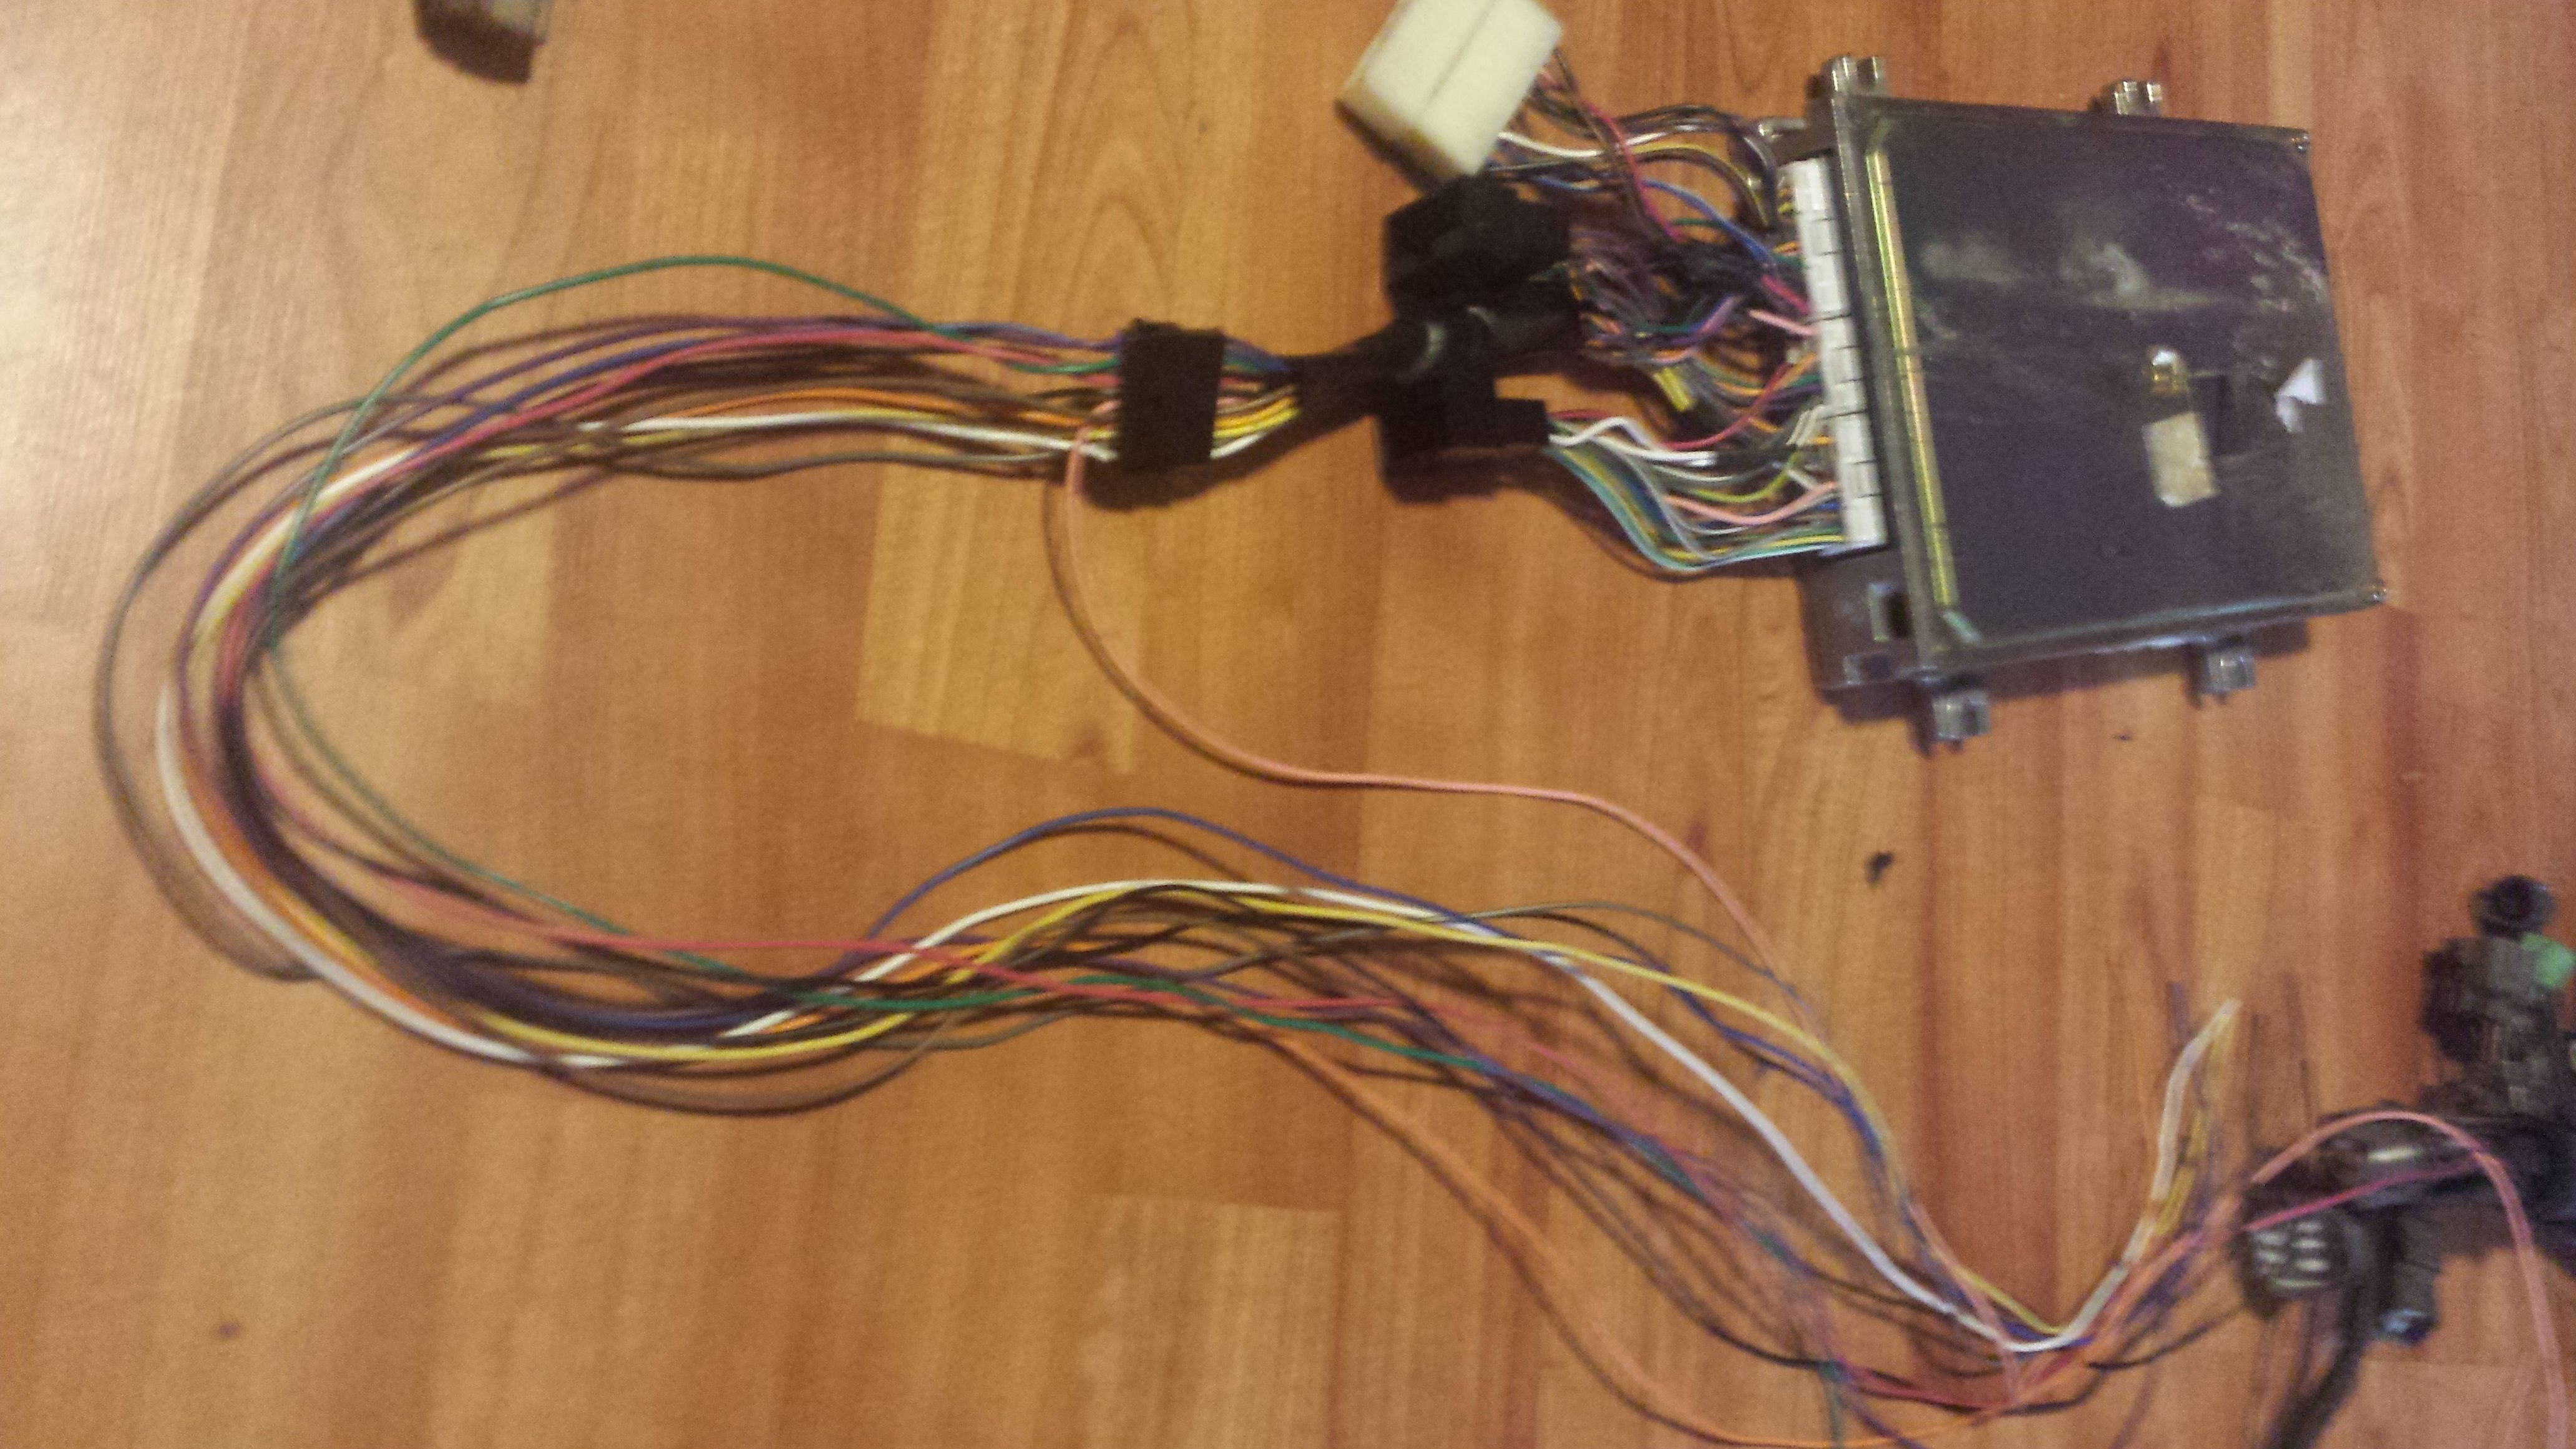 obd0 ecu wiring diagram kidde smoke detector honda civic dpfi distributor